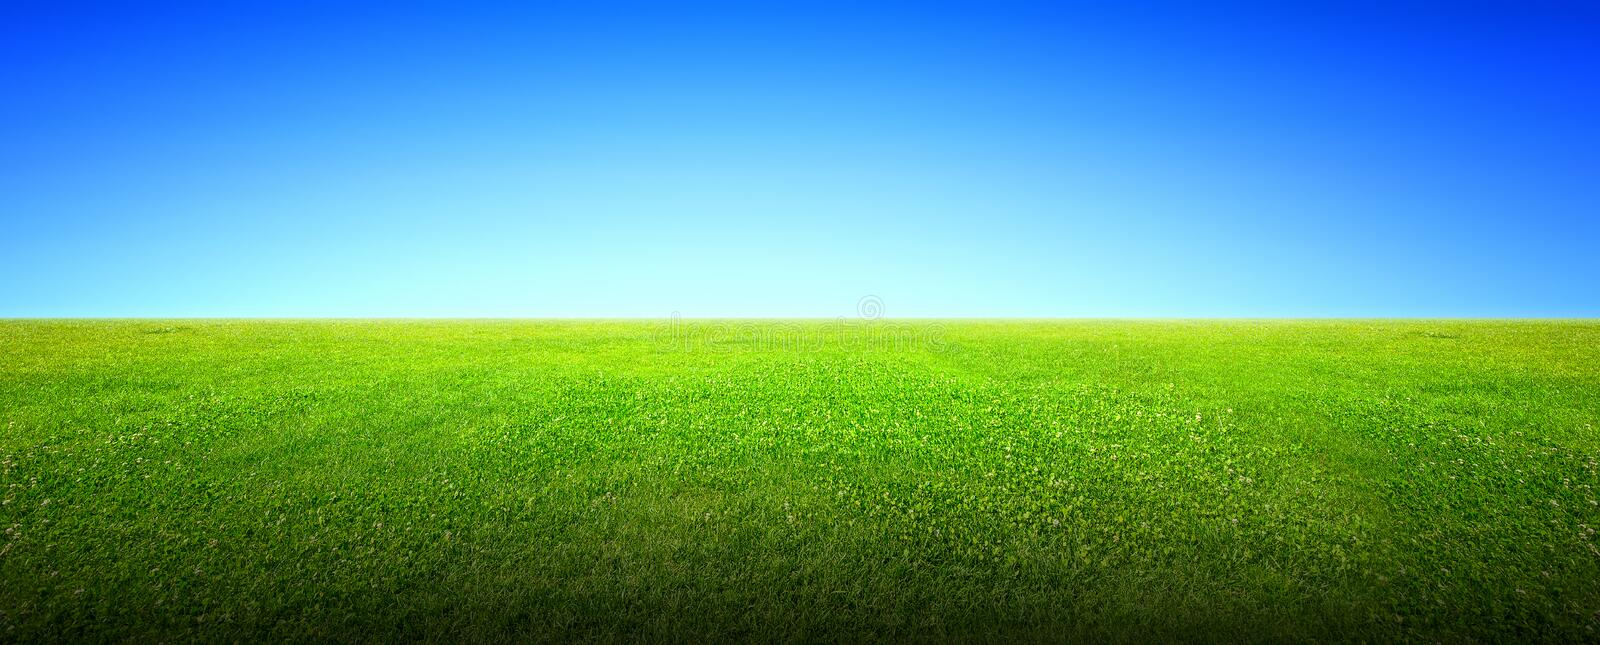 Field Of Green Grass And Sky Stock Photo Image of farm flora